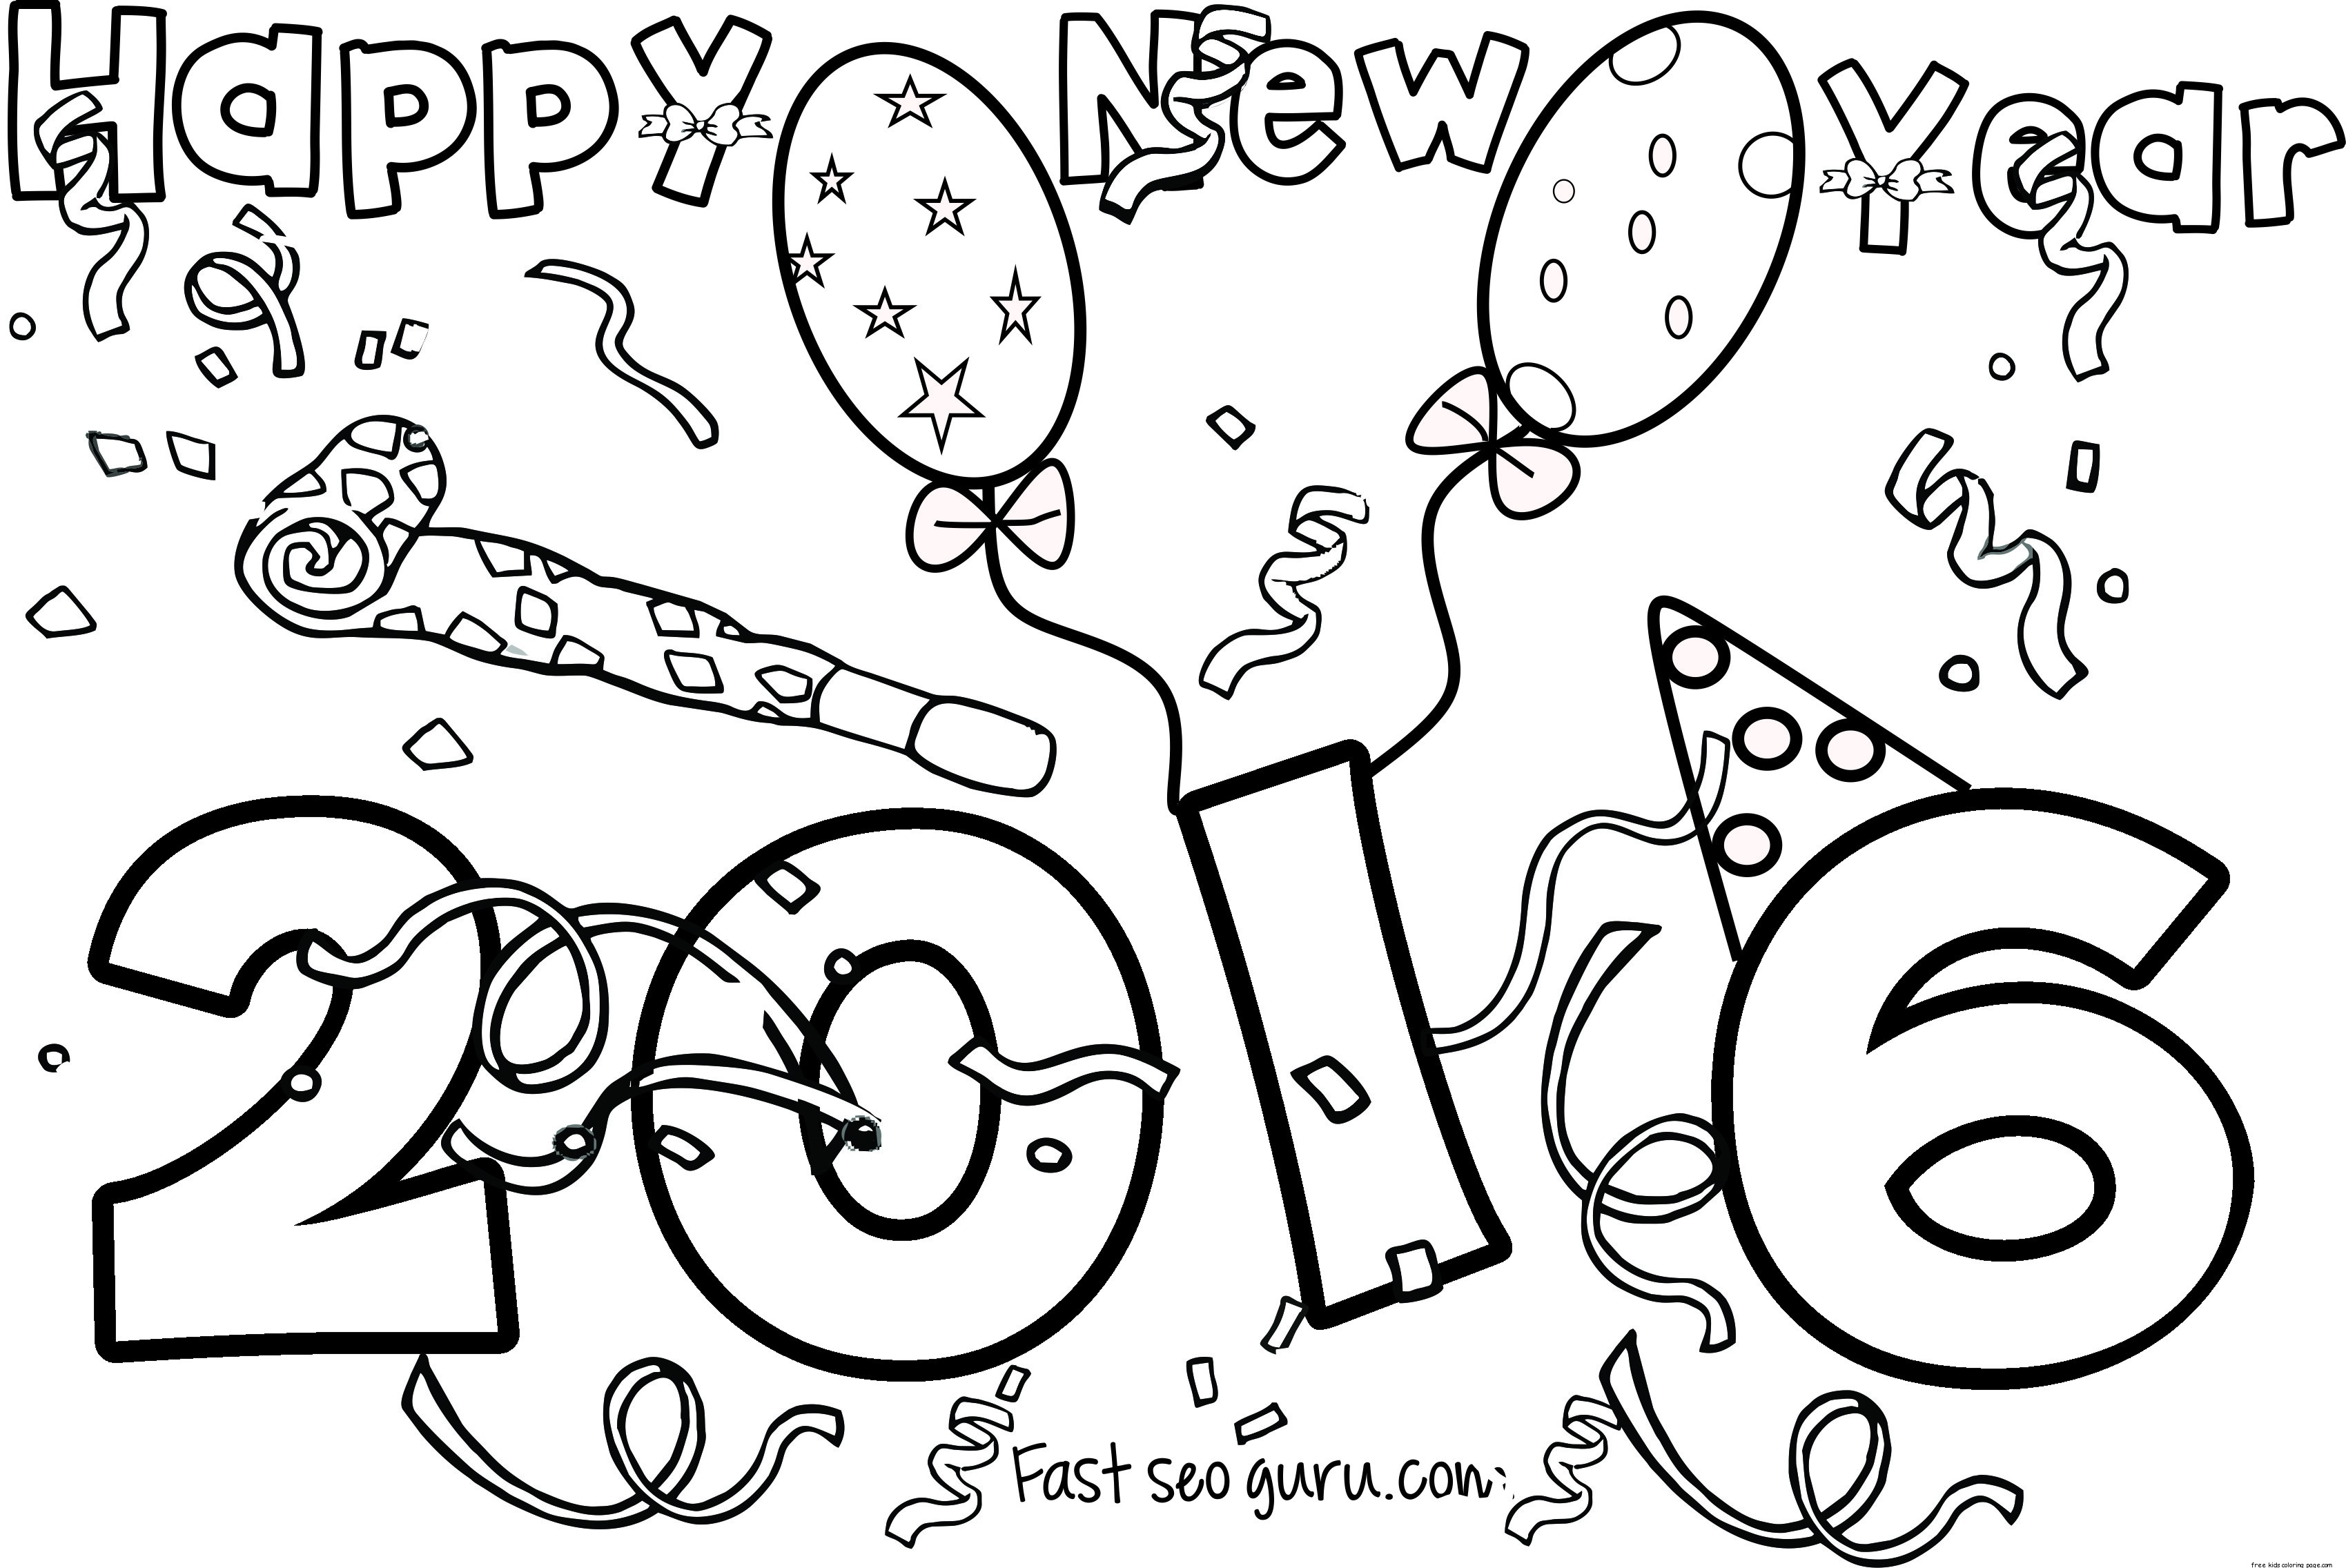 Happy New Year Coloring Pages Printable At Getdrawings Com Free